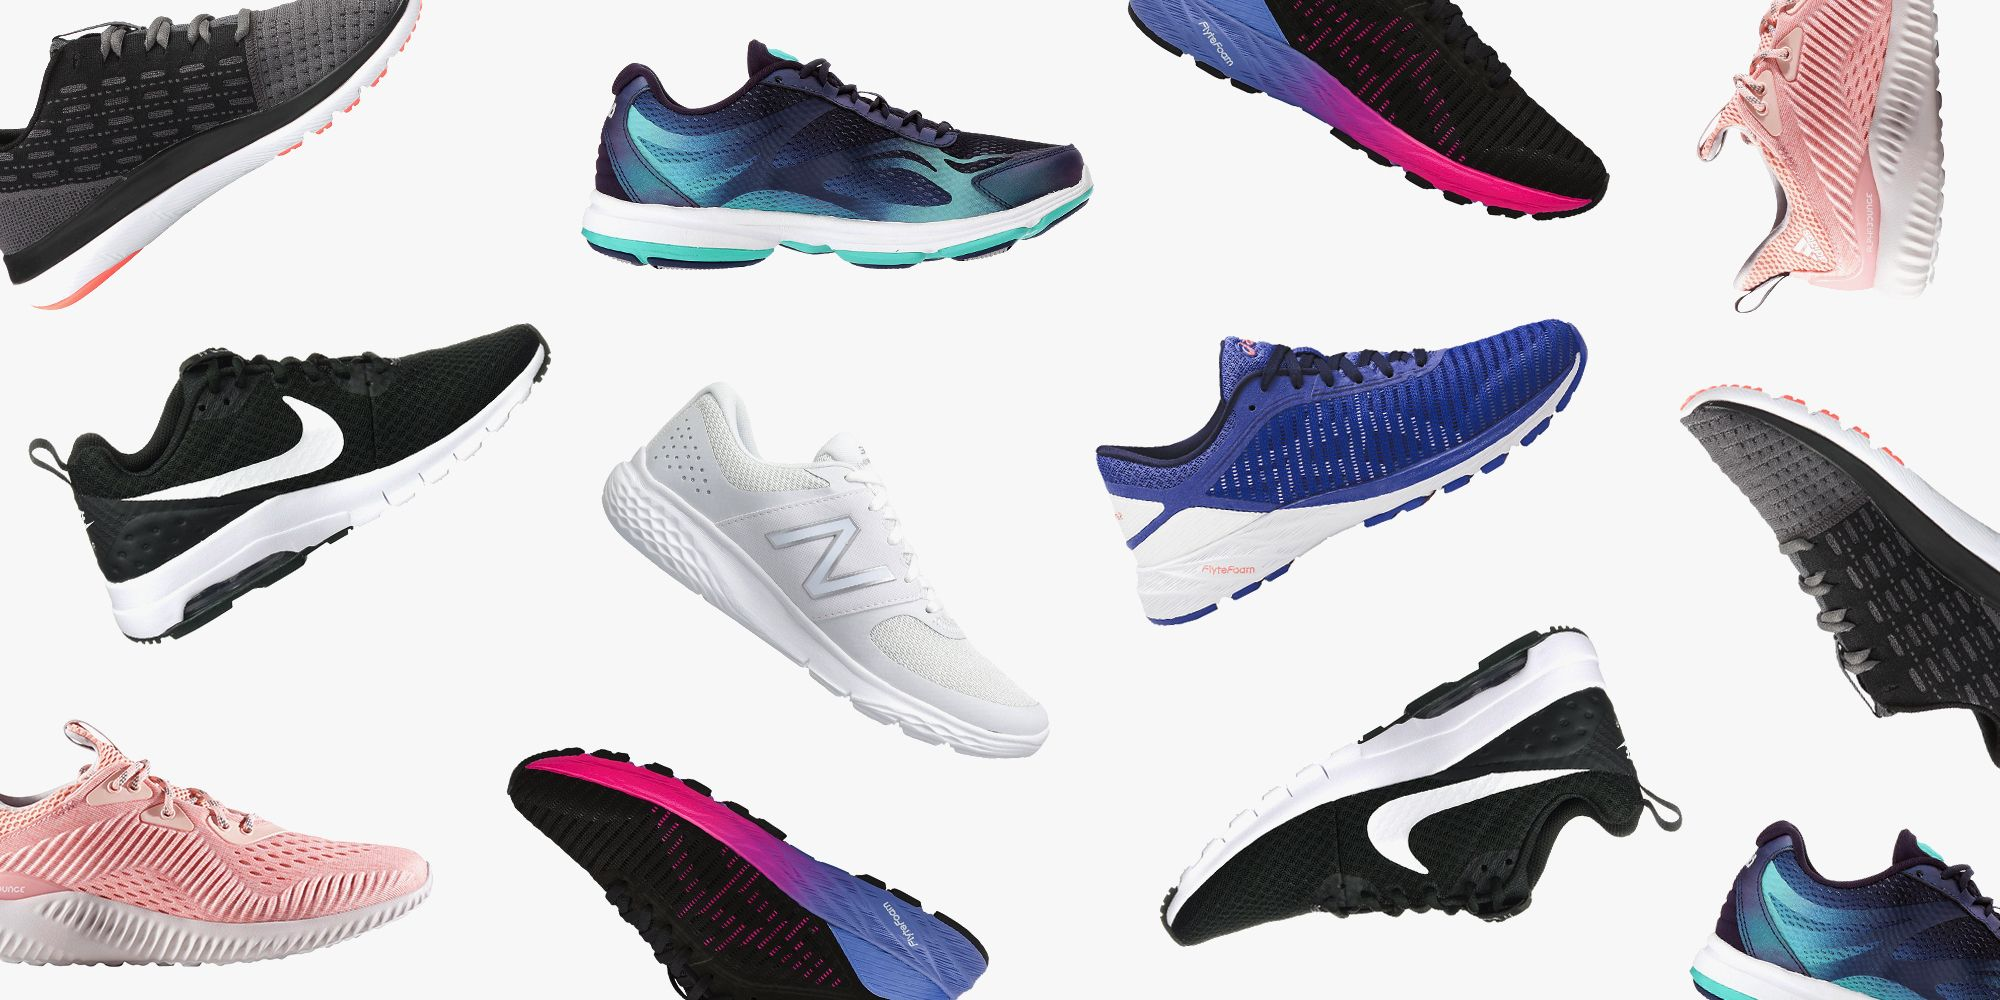 10 Best Walking Shoes for Women in 2018 Most fortable Walking Shoes